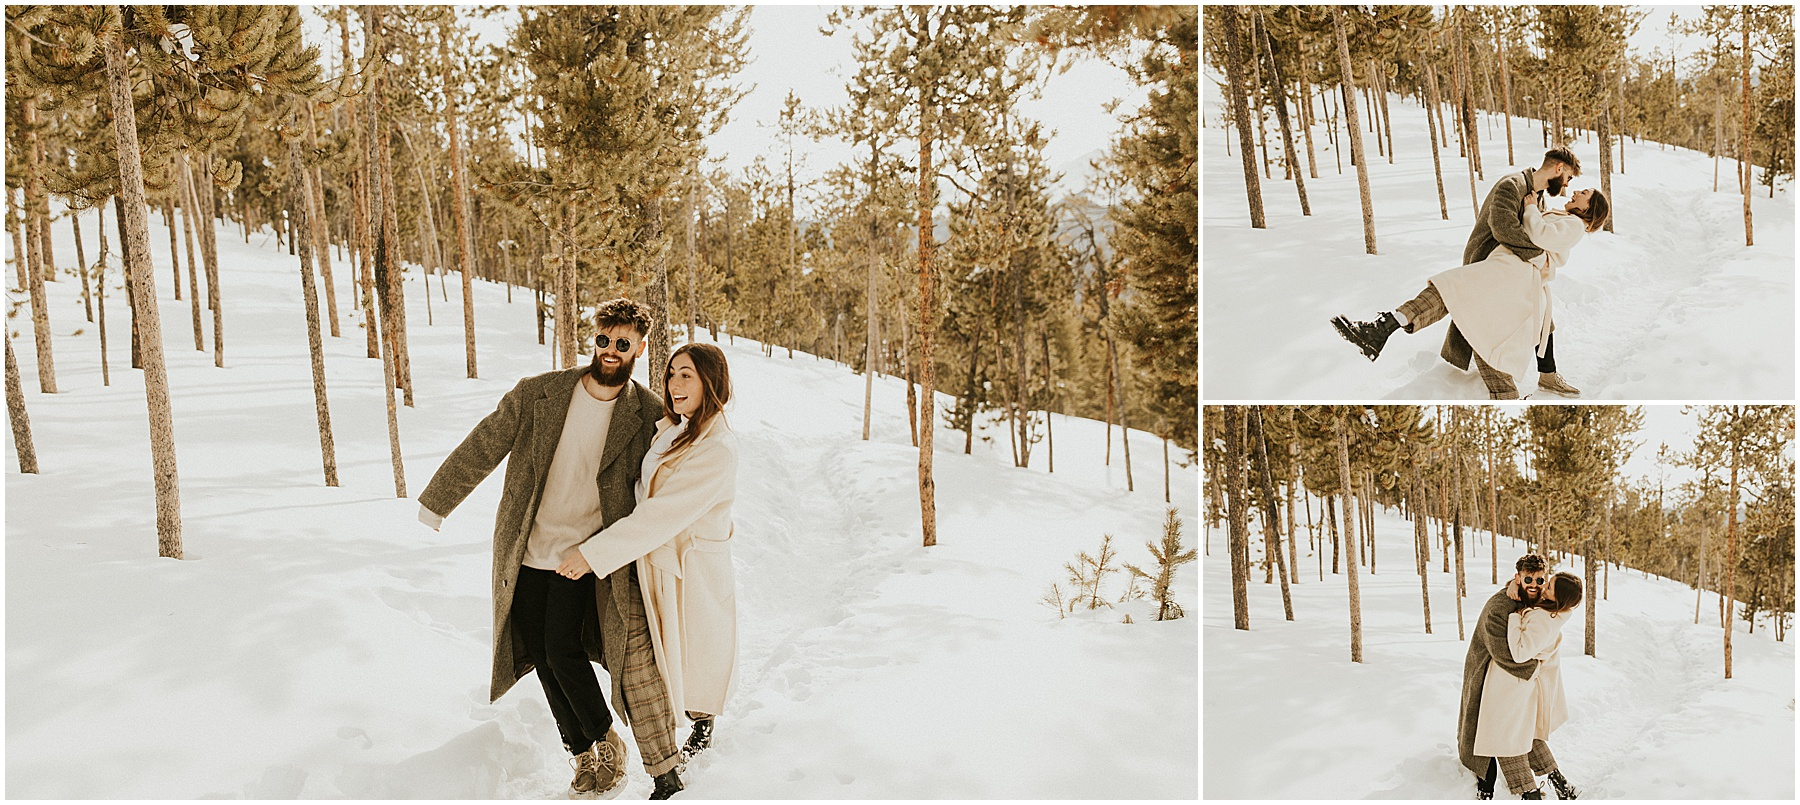 Proposal and engagement session in Breckenridge, Colorado Saphire Point_0360.jpg